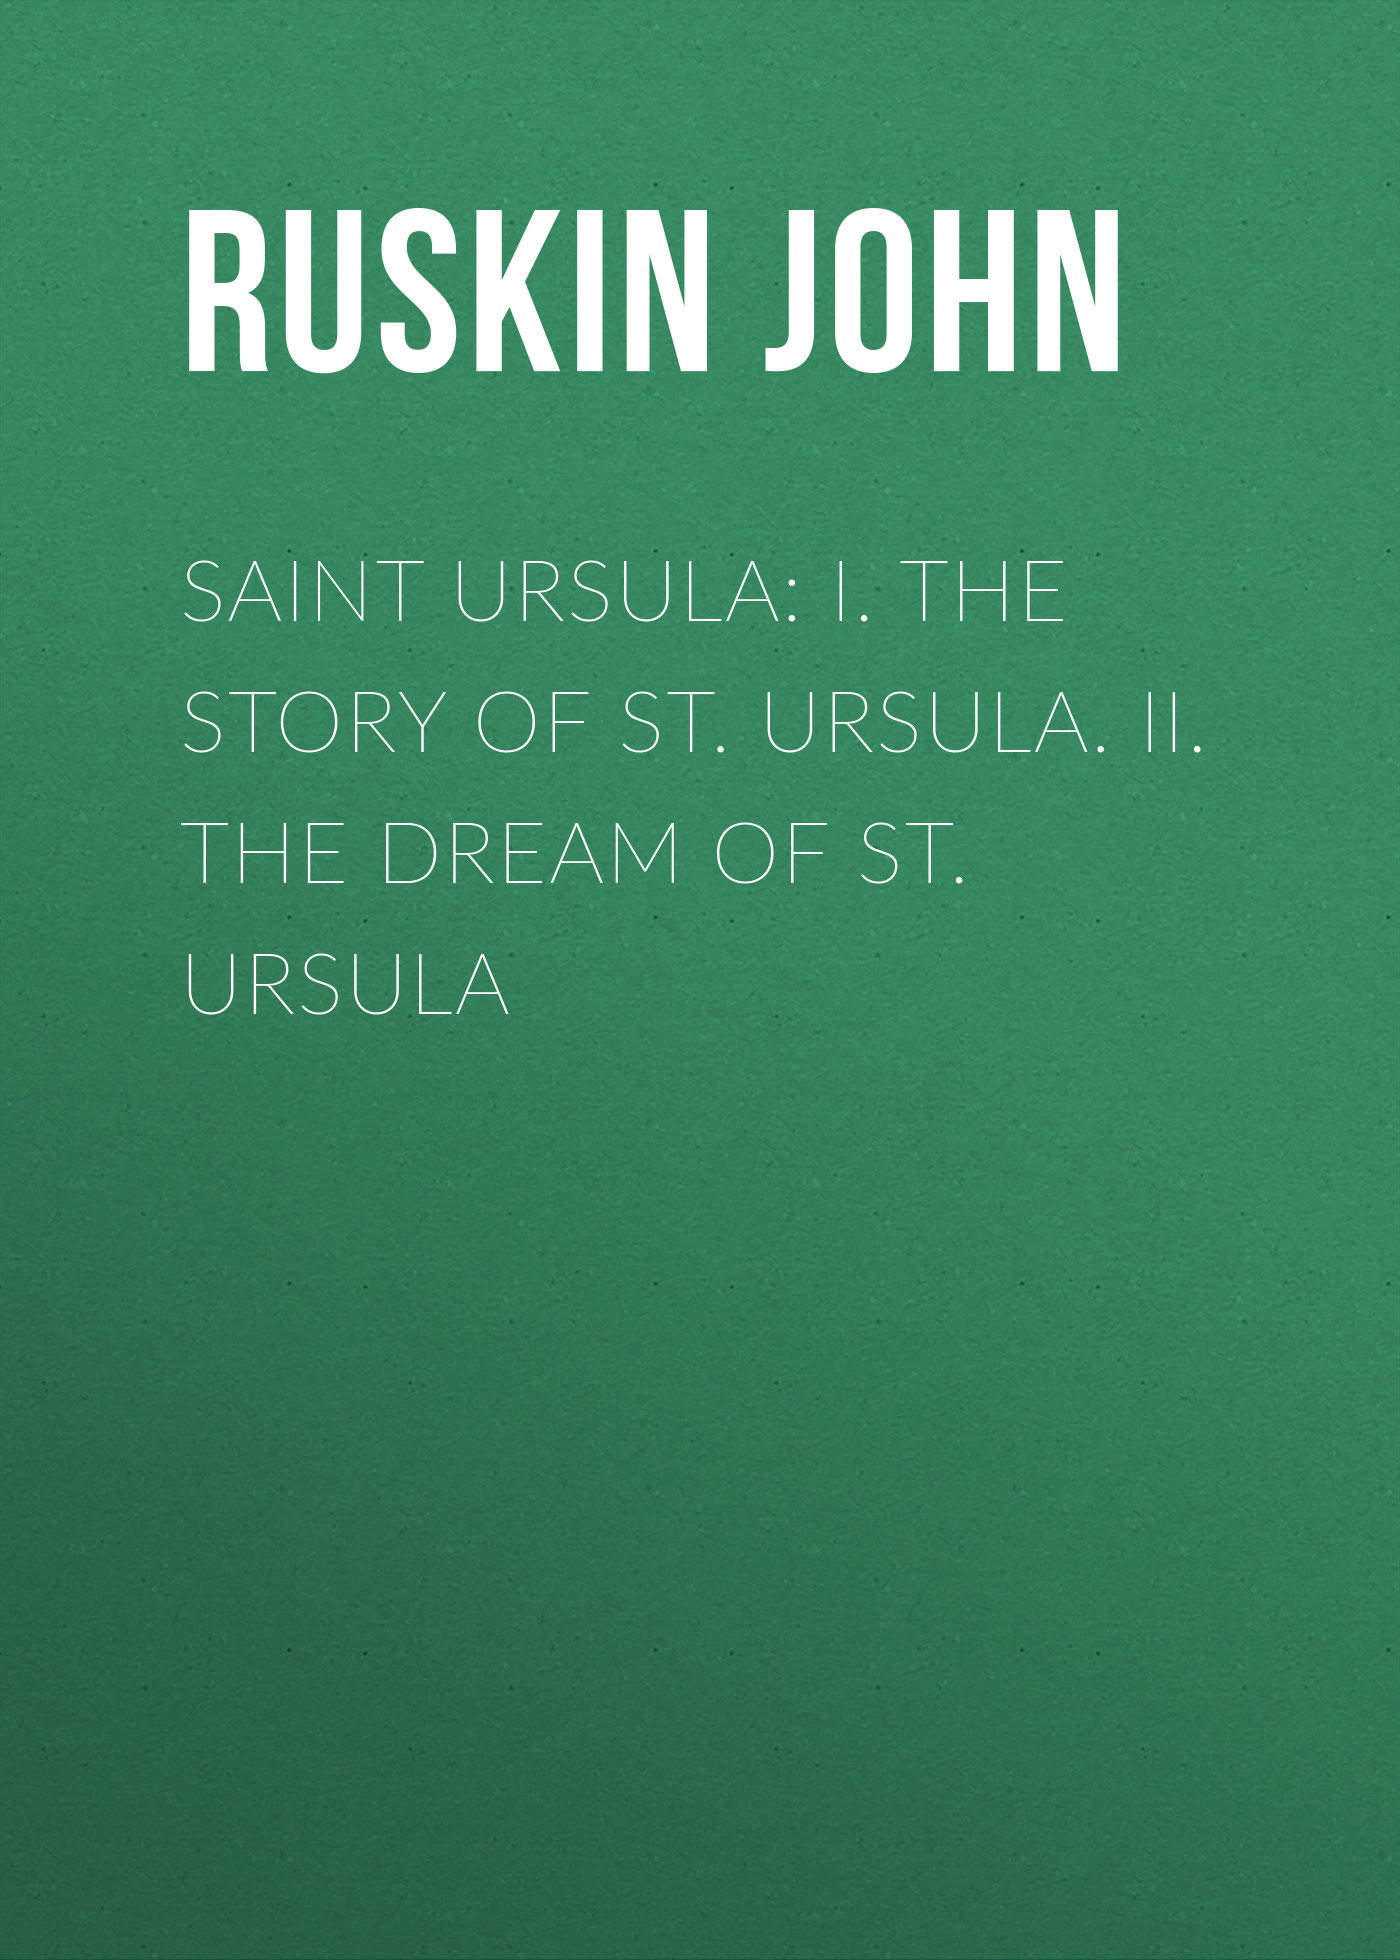 Ruskin John Saint Ursula: I. The Story of St. Ursula. II. The Dream of St. Ursula the wisdom of john paul ii